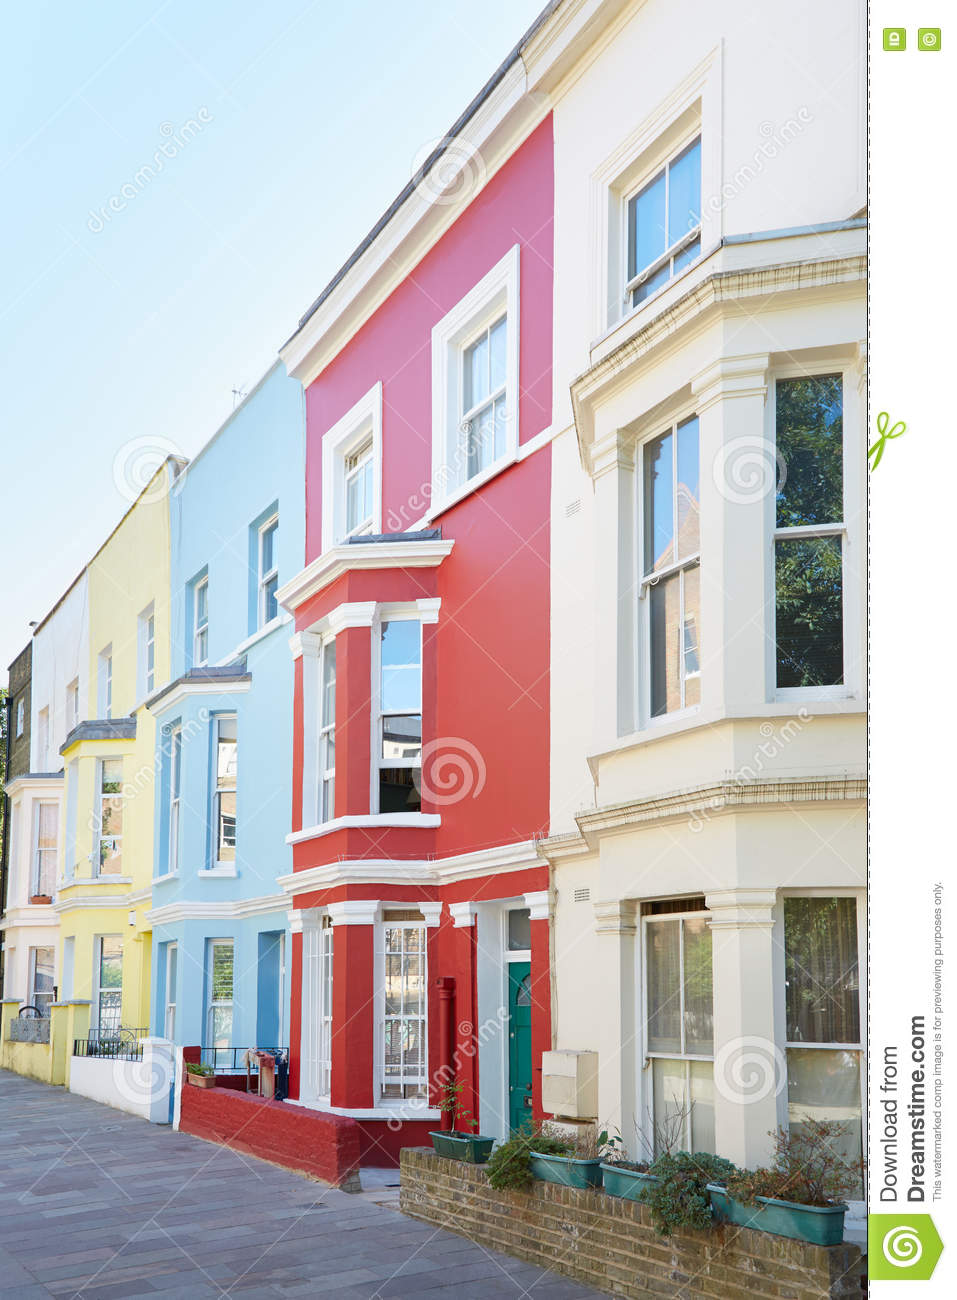 Typical Colorful Houses Facades In London Stock Image - Image of ...